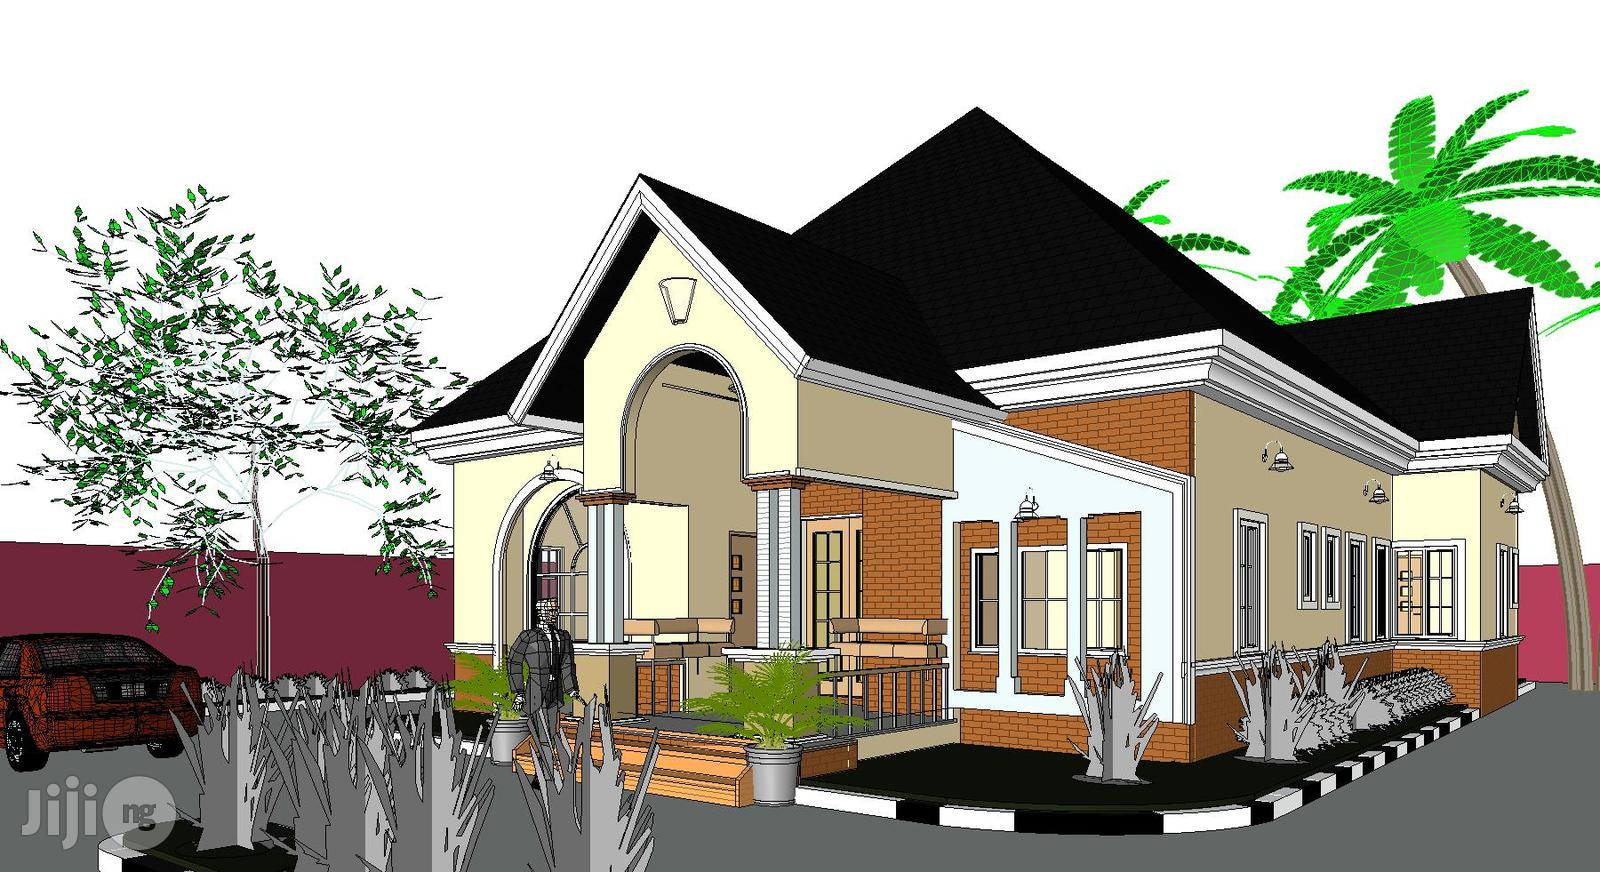 Architectural House Building Plan | Building & Trades Services for sale in Nnewi, Anambra State, Nigeria